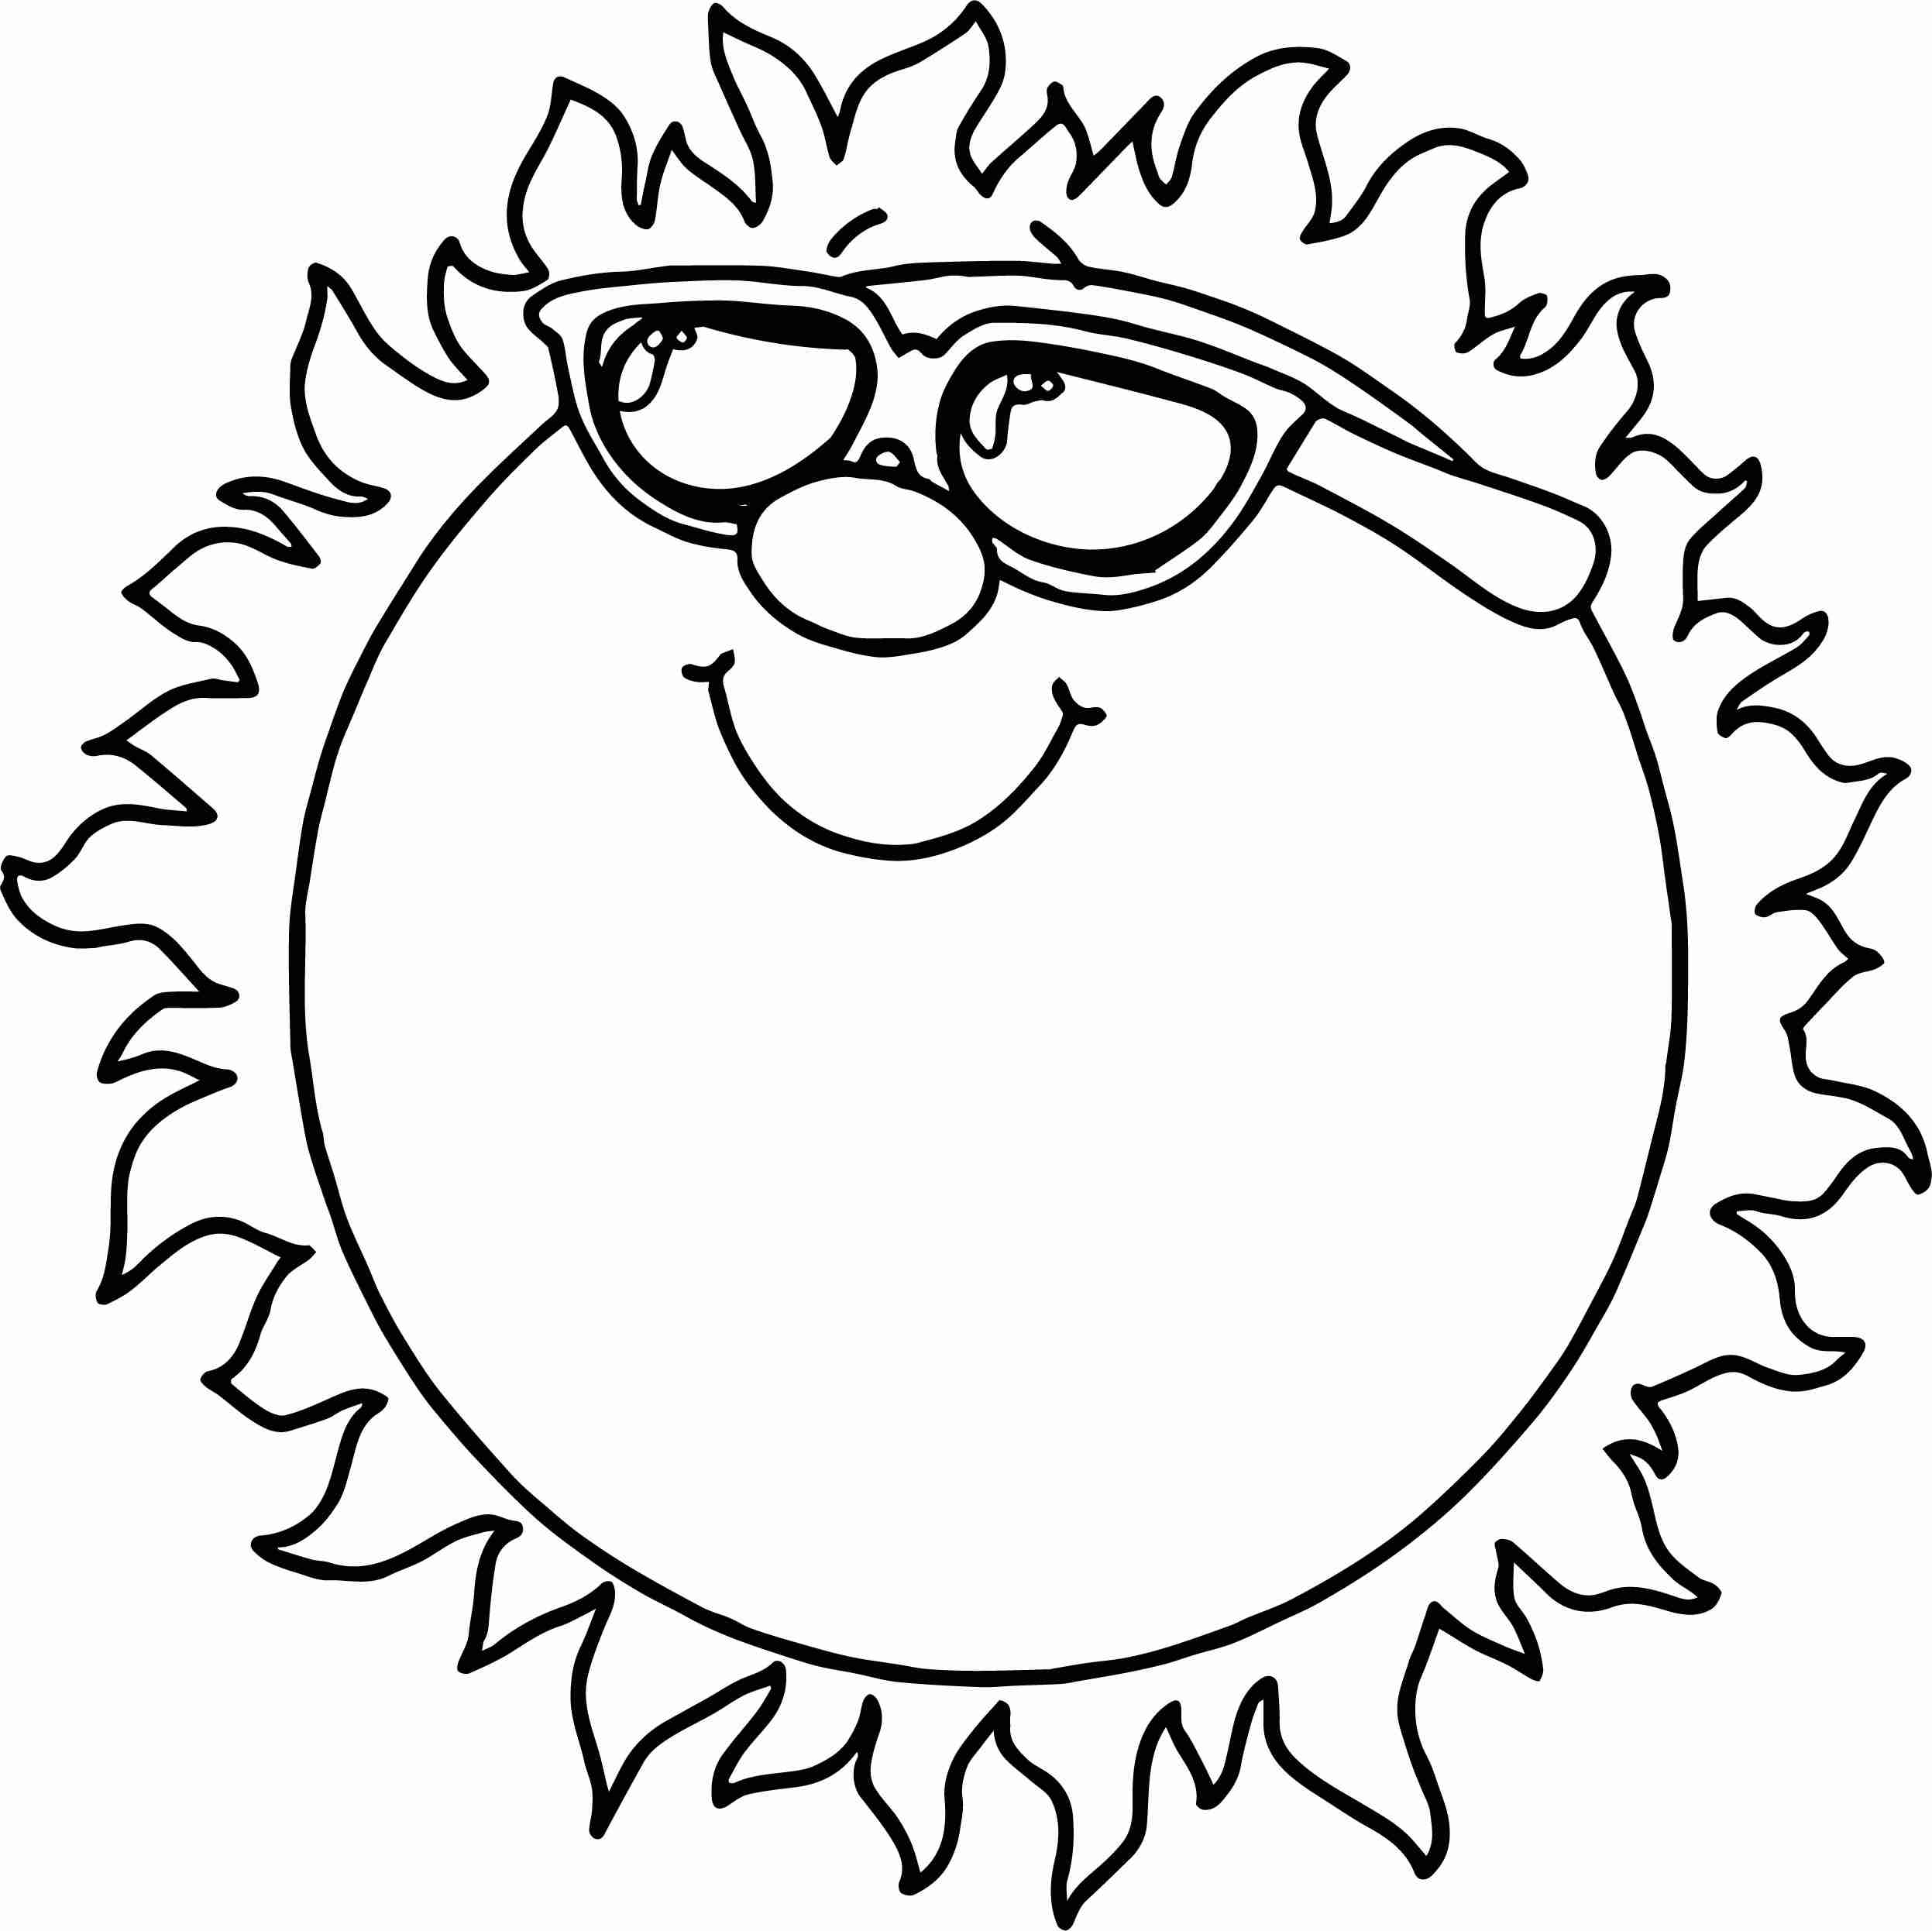 2494x2493 Smiley Sun With Sunglasses Printable For Preschoolers Coloring